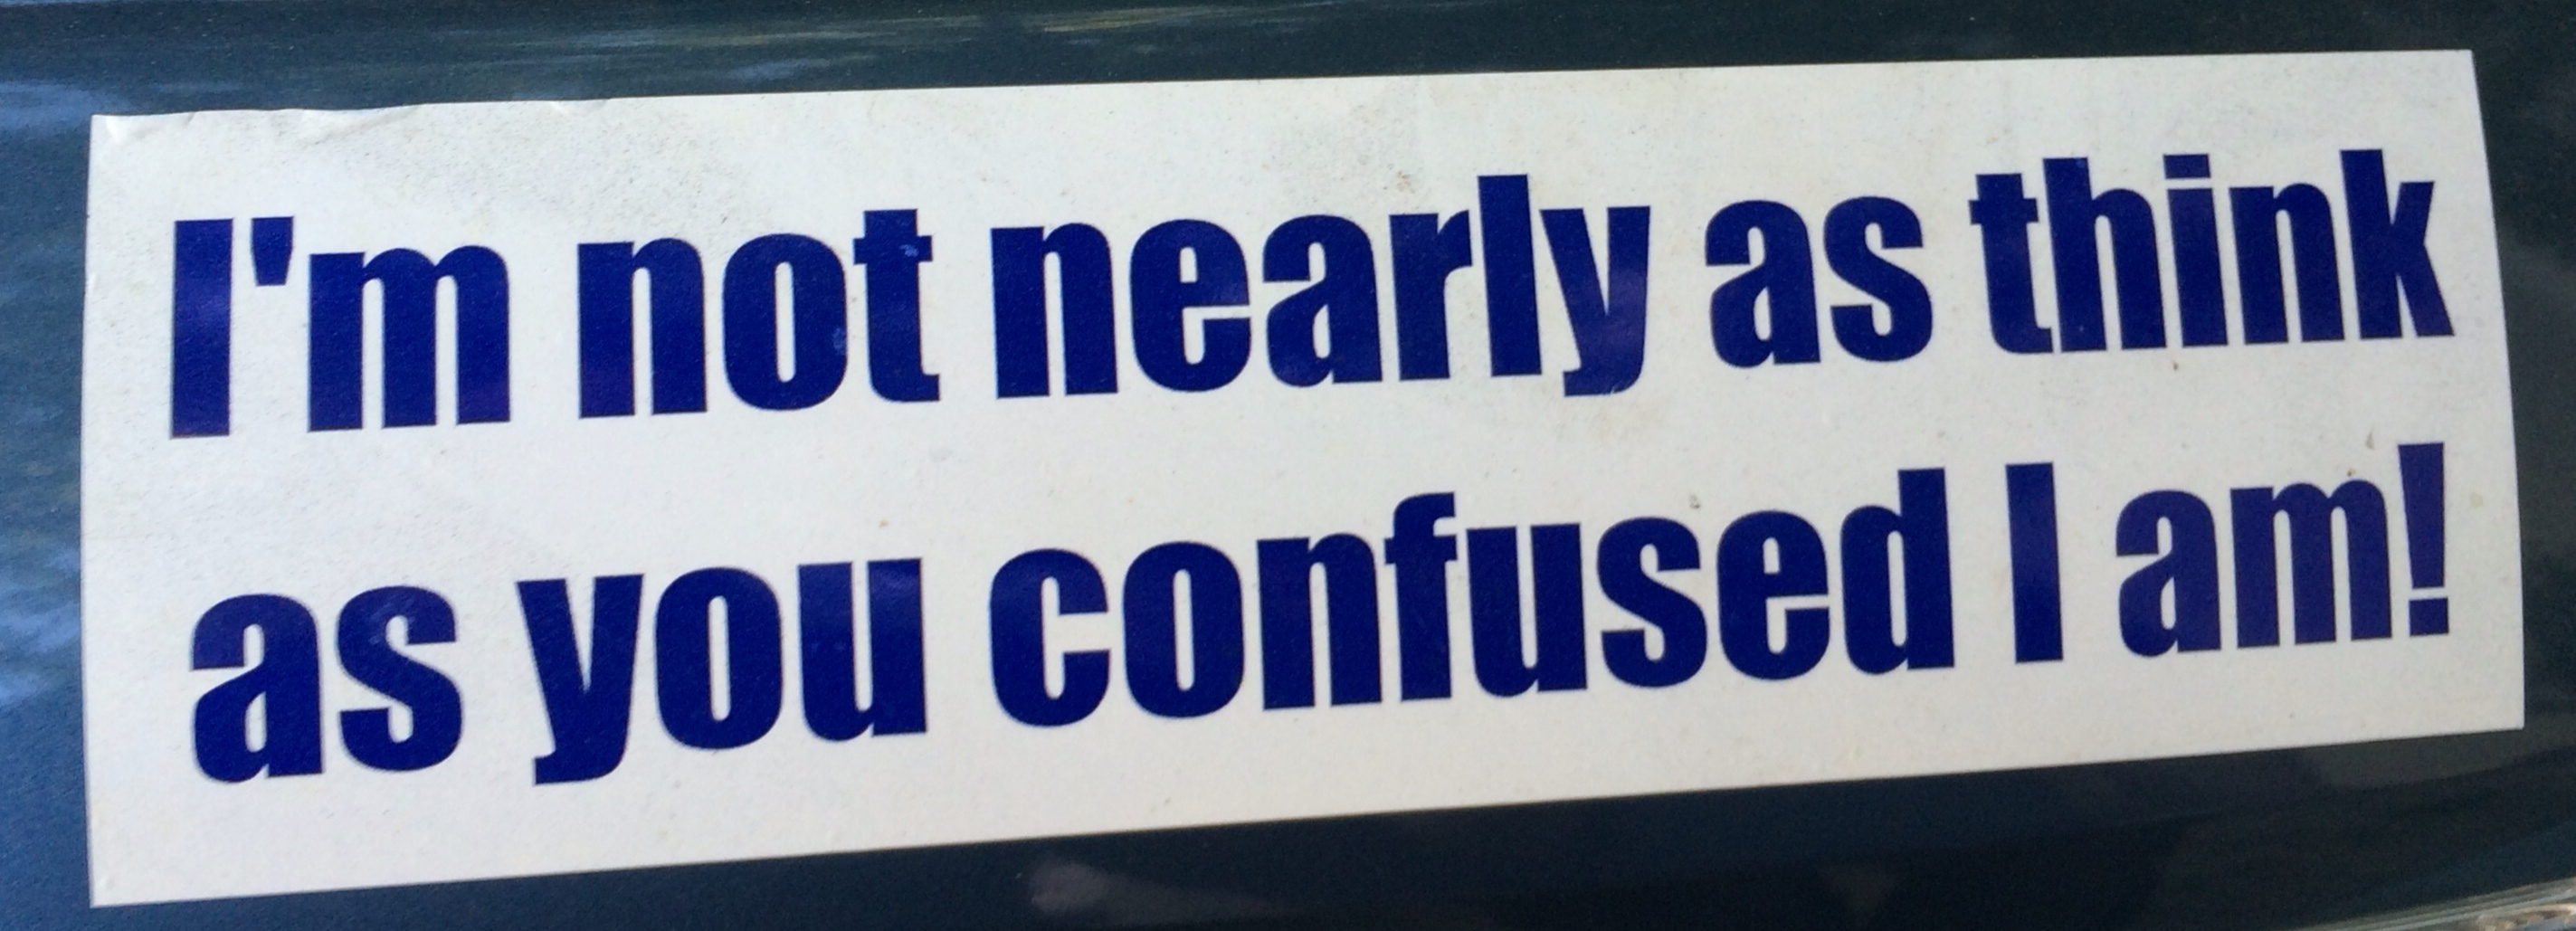 Bumpersticker about confused